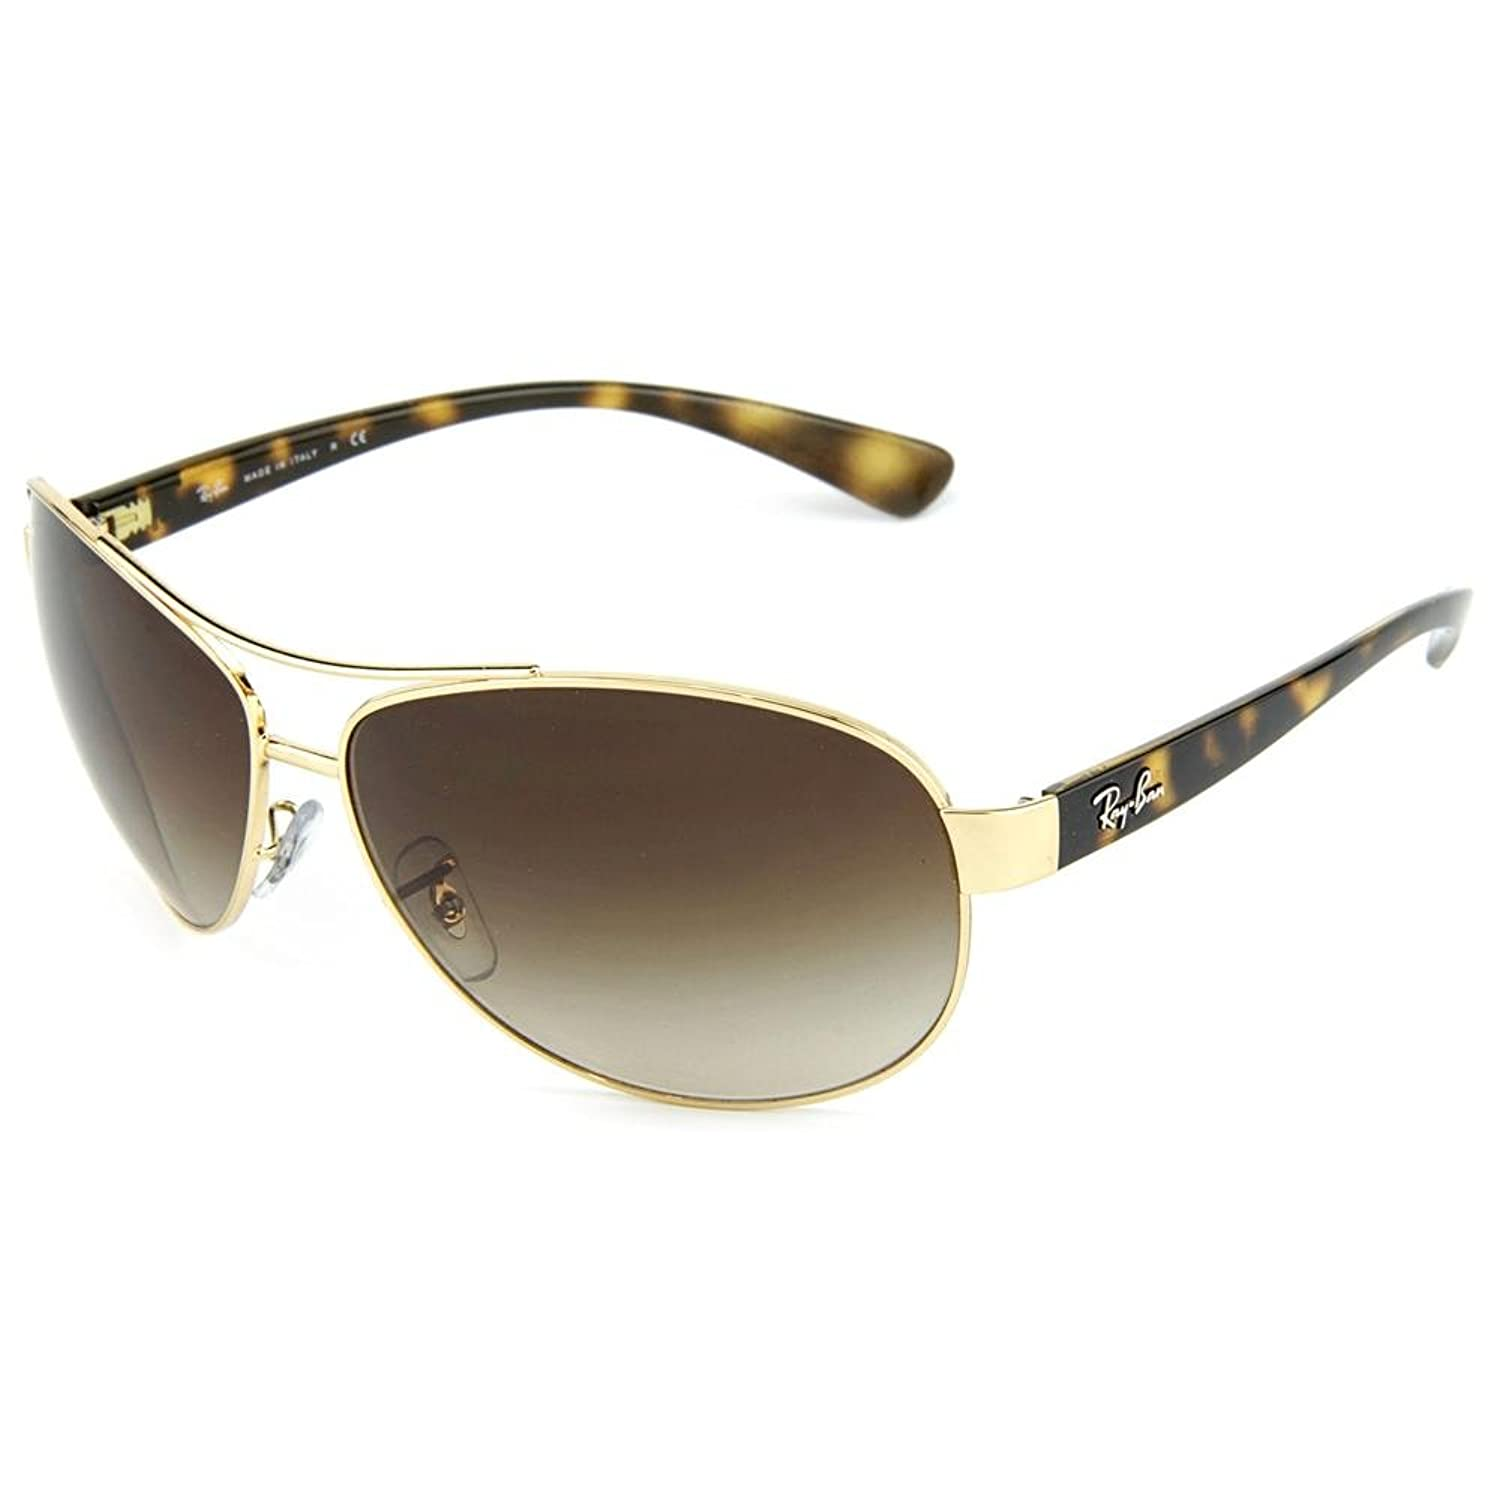 cheapest place to buy ray bans  Ray Ban AVIATOR LARGE METAL Sunglasses Silver Silver Mirror ...